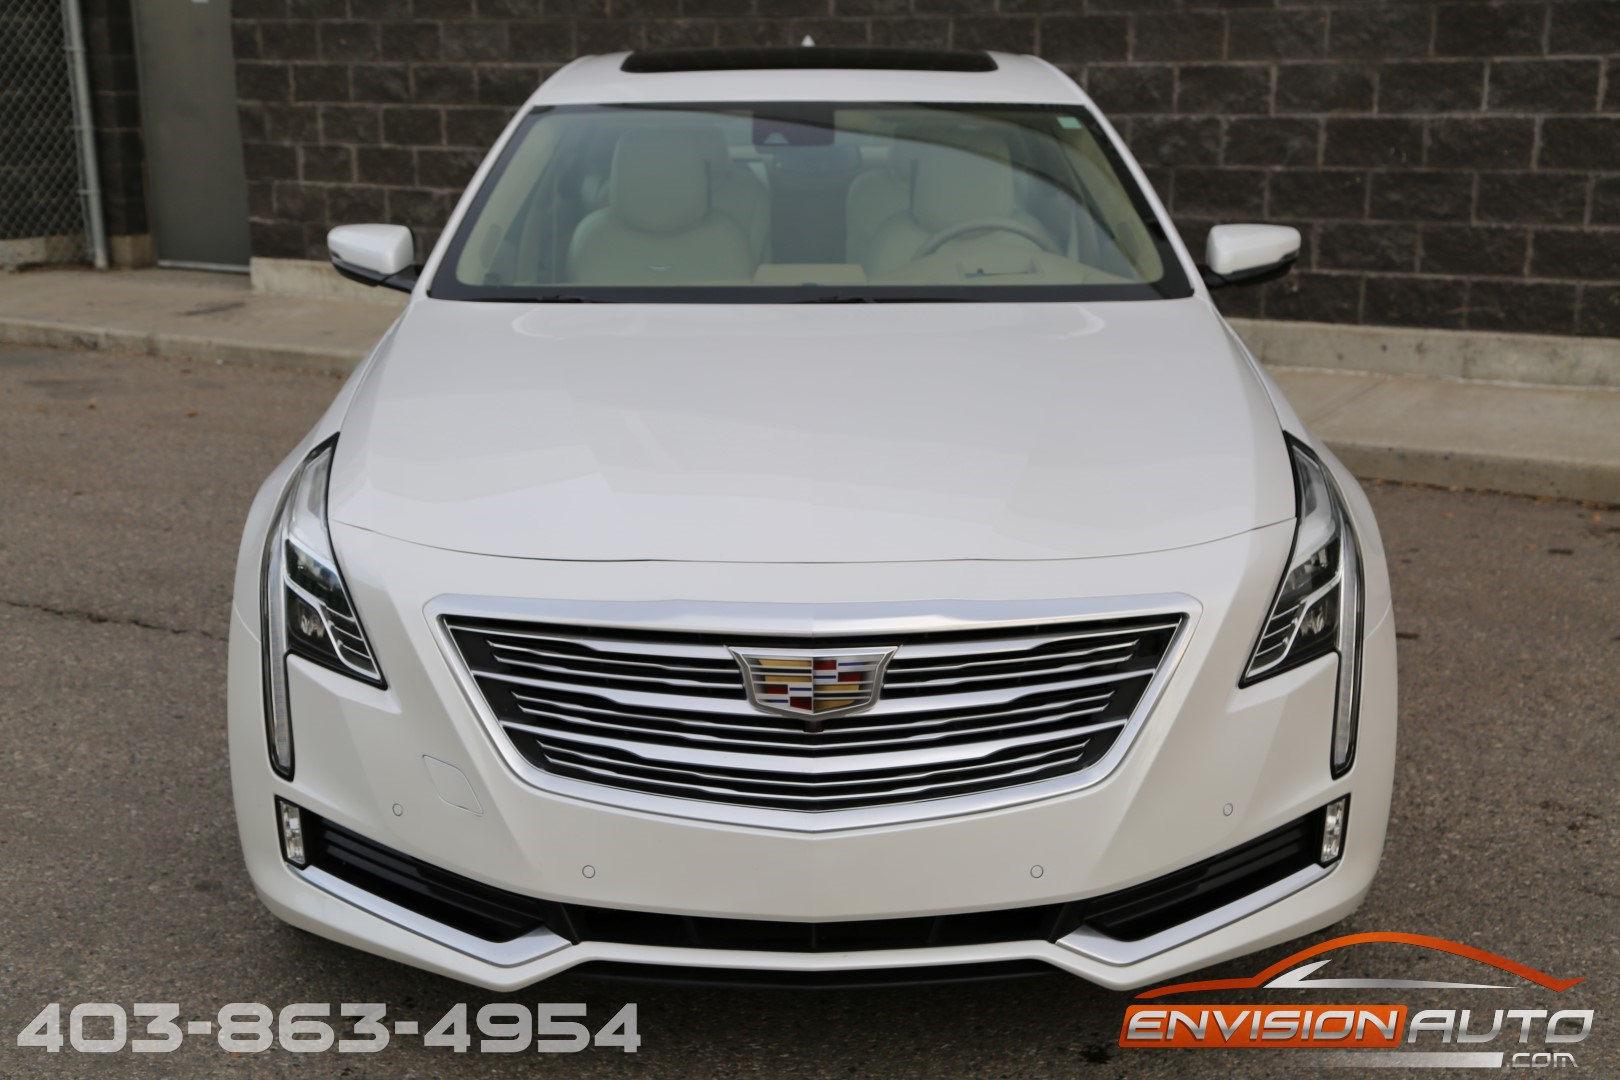 2016 cadillac ct6 awd 3 0tt platinum spotless carfax gmpp warranty 2021 or 160 000kms